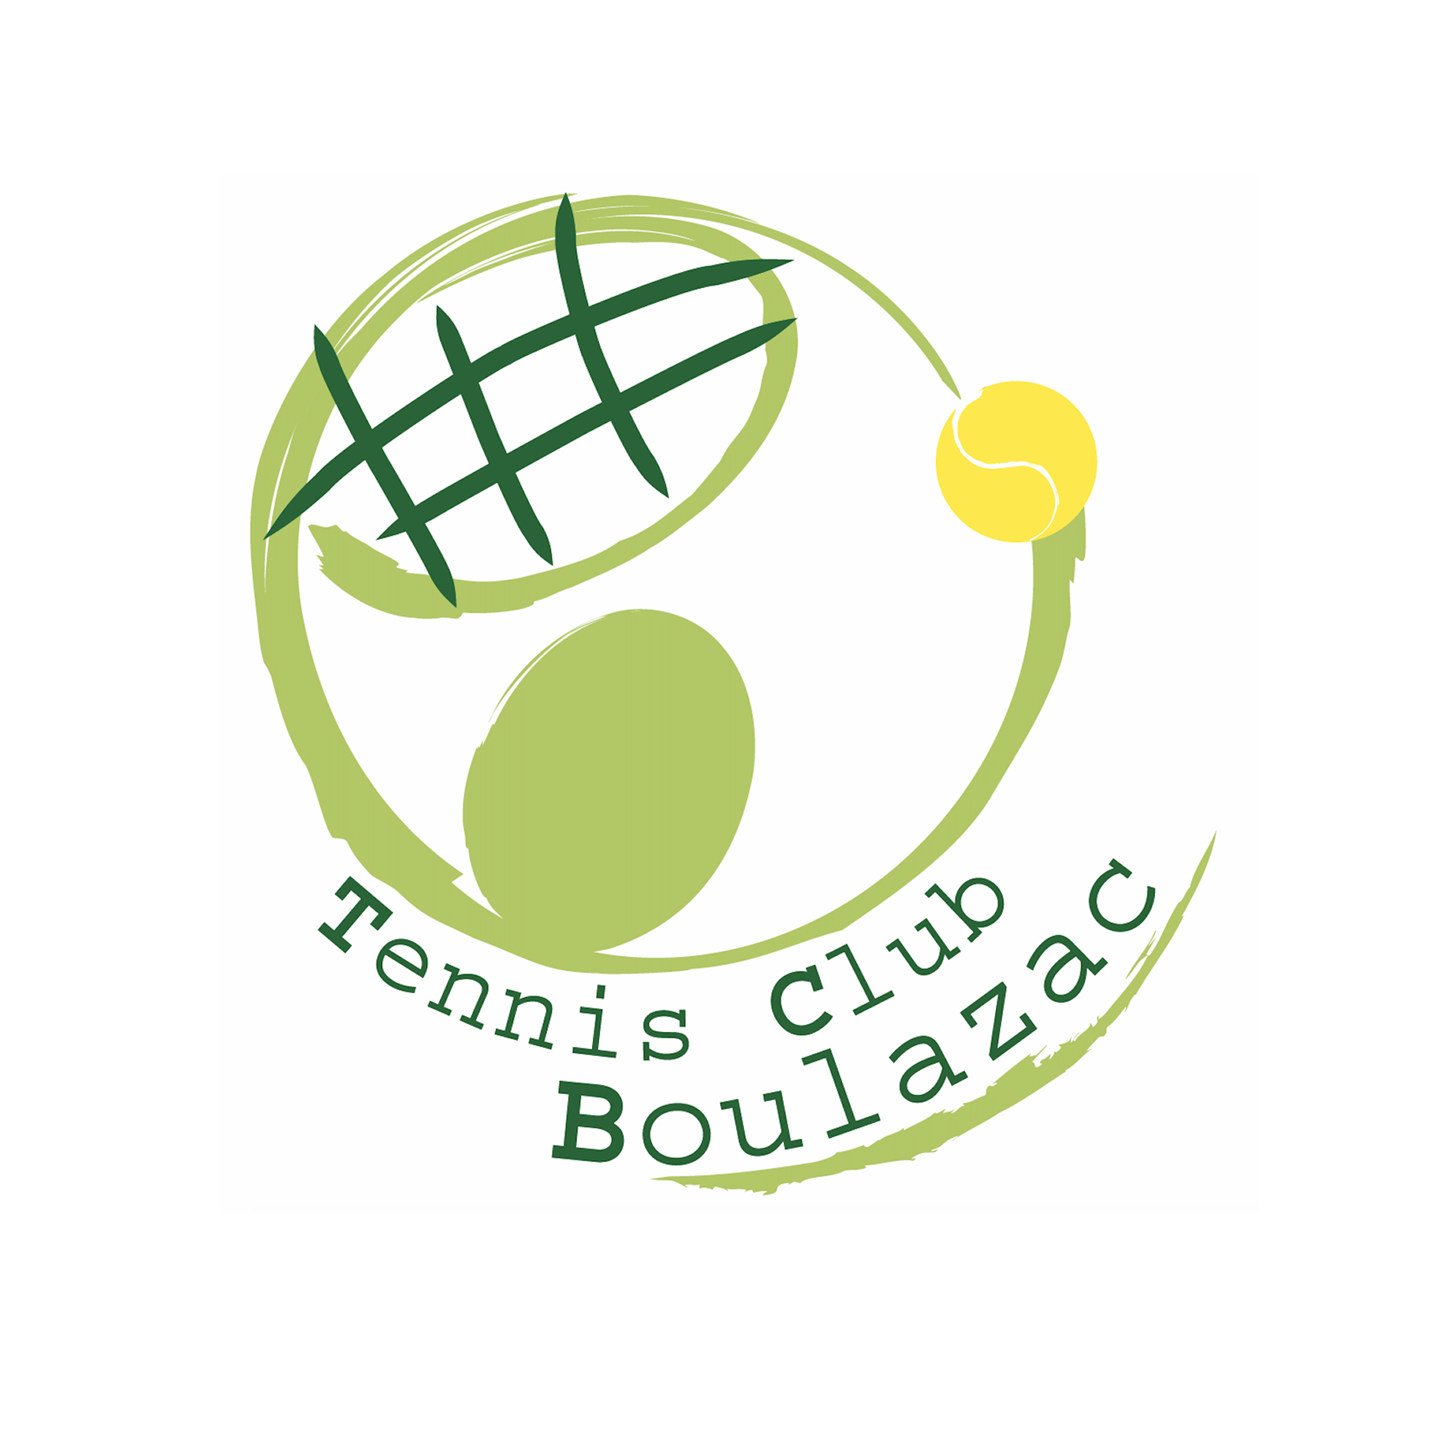 Tennis Club Boulazac